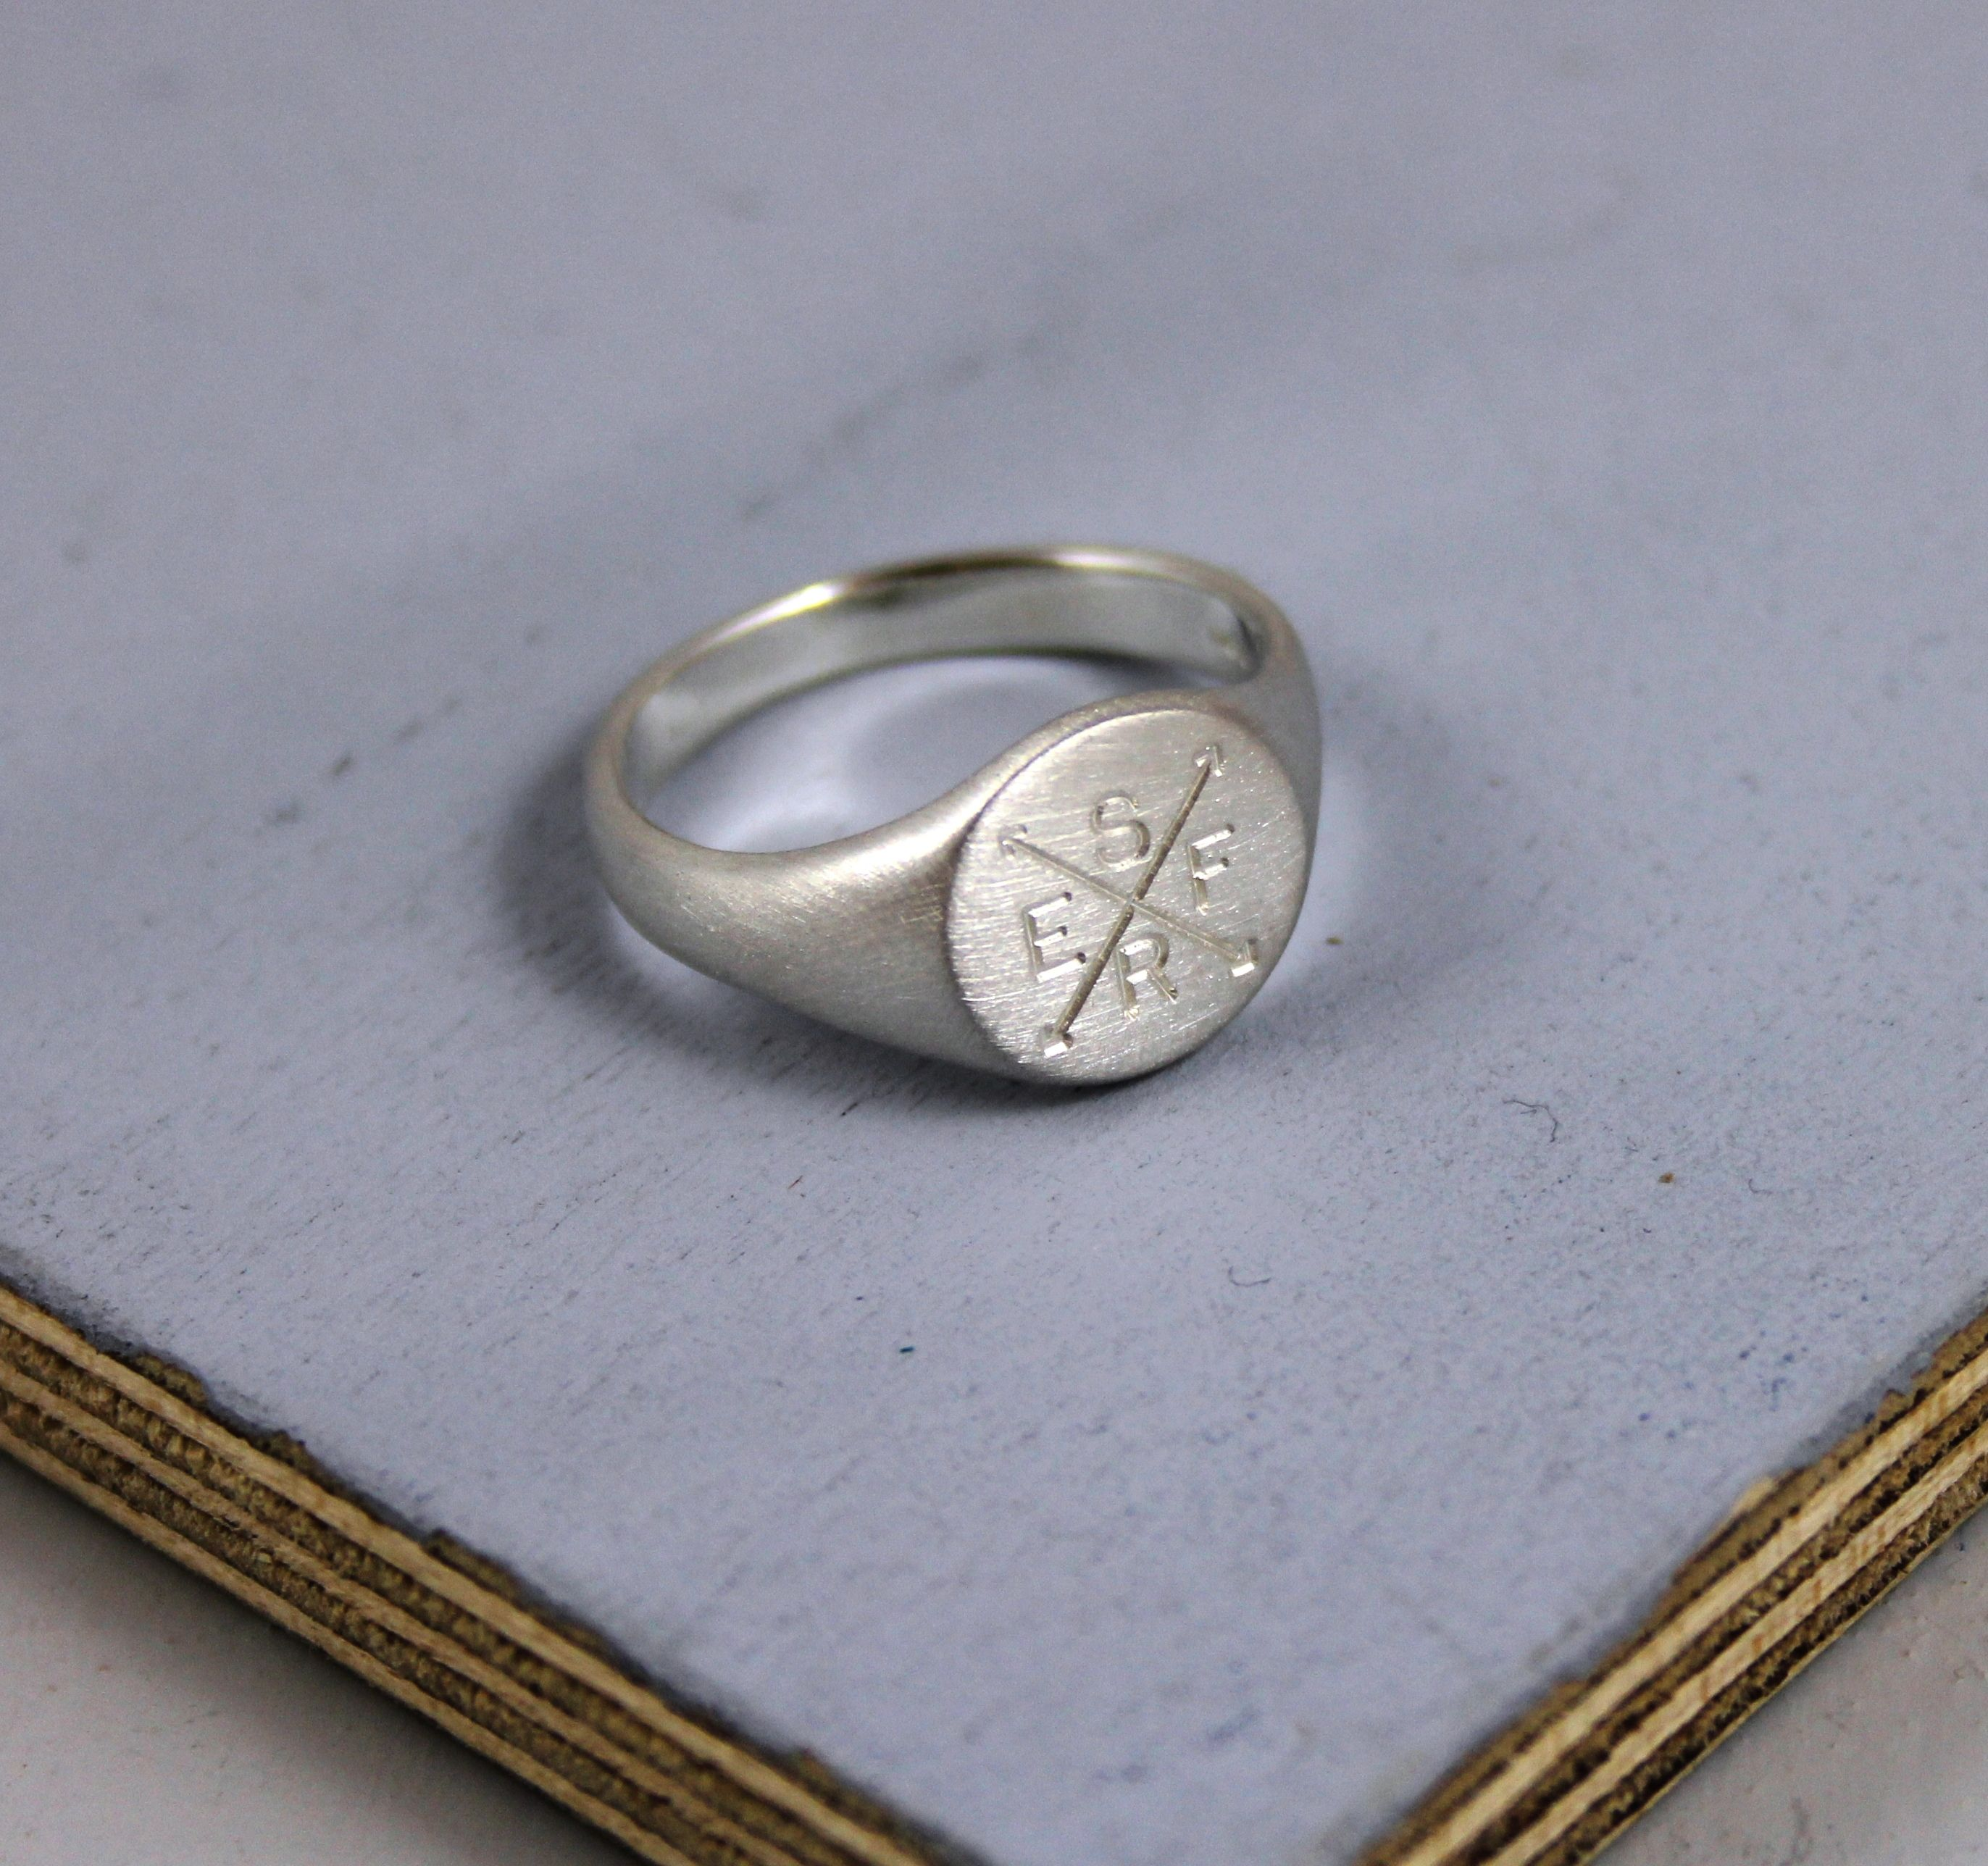 A handmade, matted, personalised signet ring engraved with your family initials - available in a wide range of sizes, perfect as a gift for both men & fashion concious women.